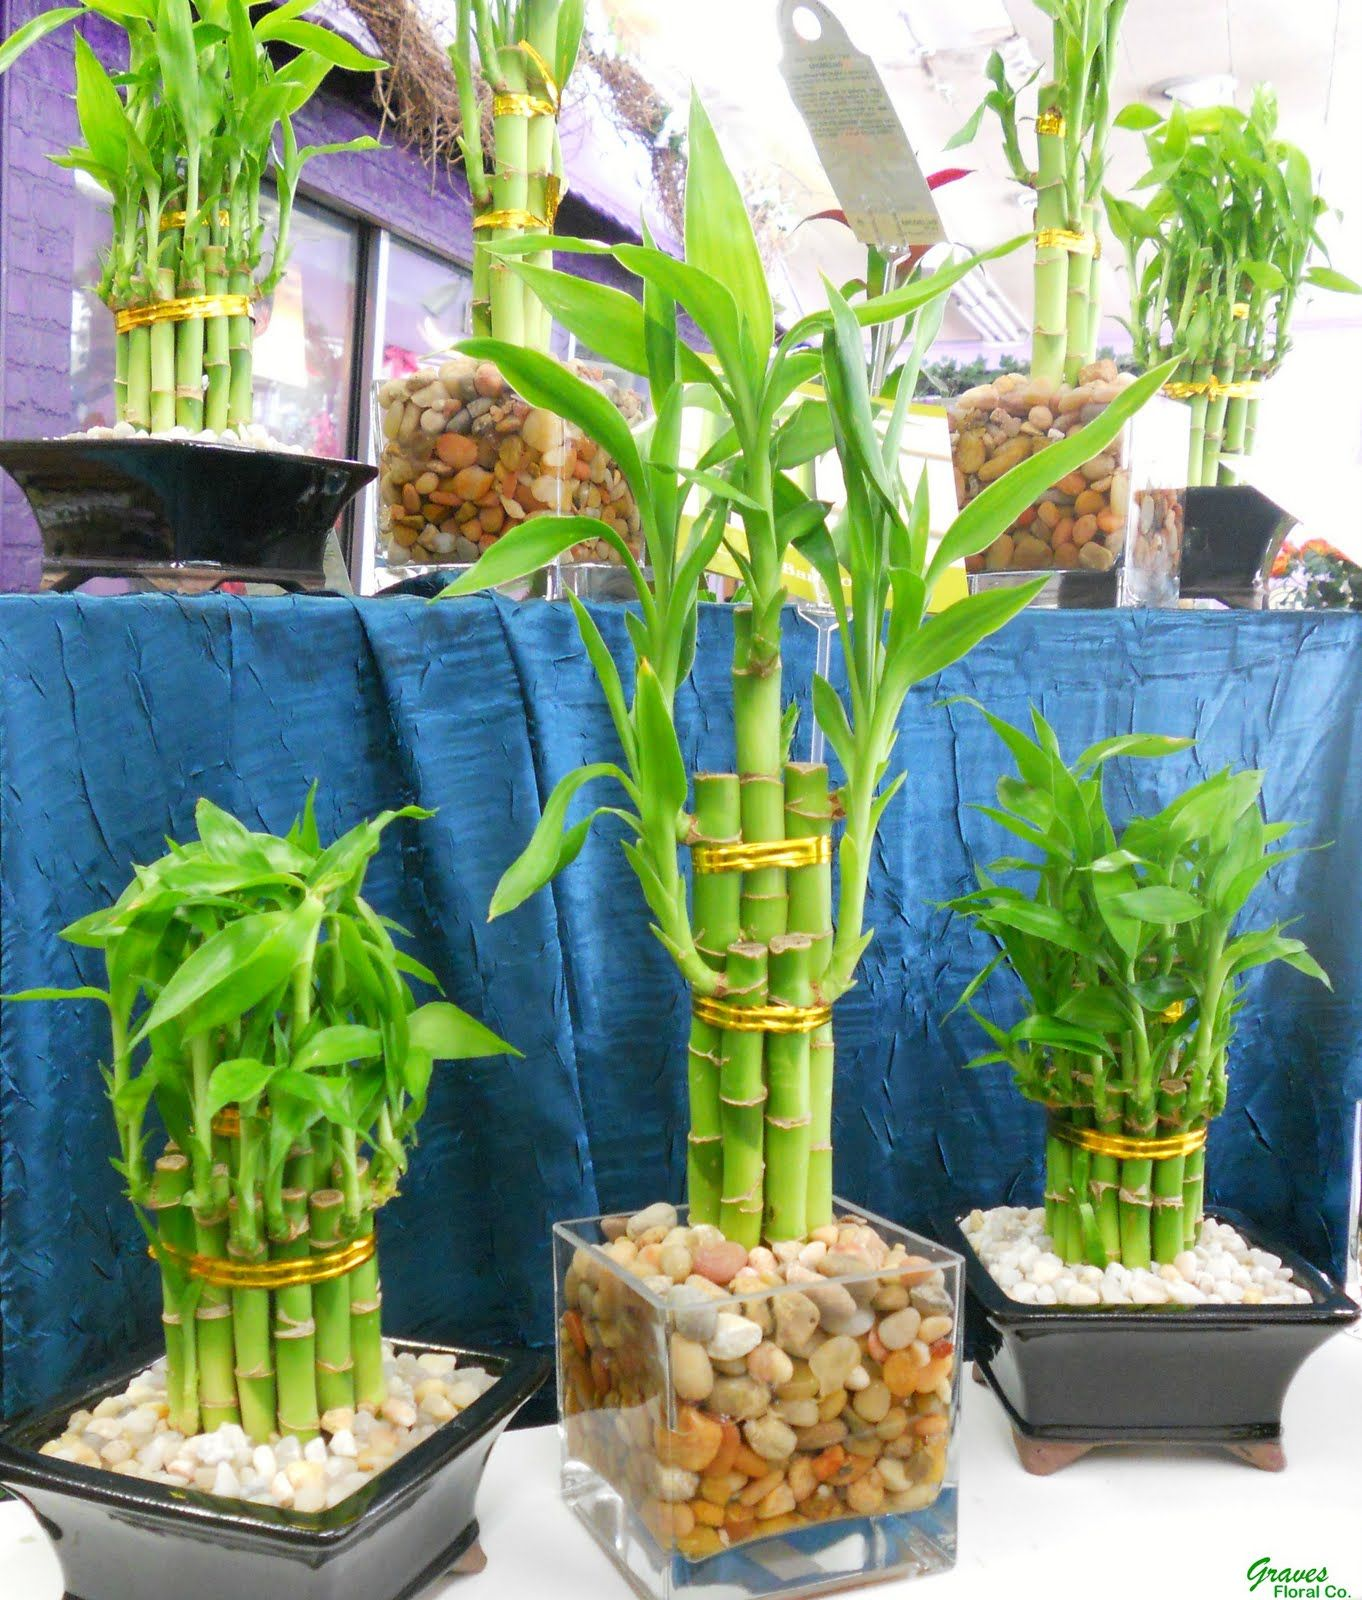 Home So Natural With Water Bamboo, Here's How to Cultivate it!